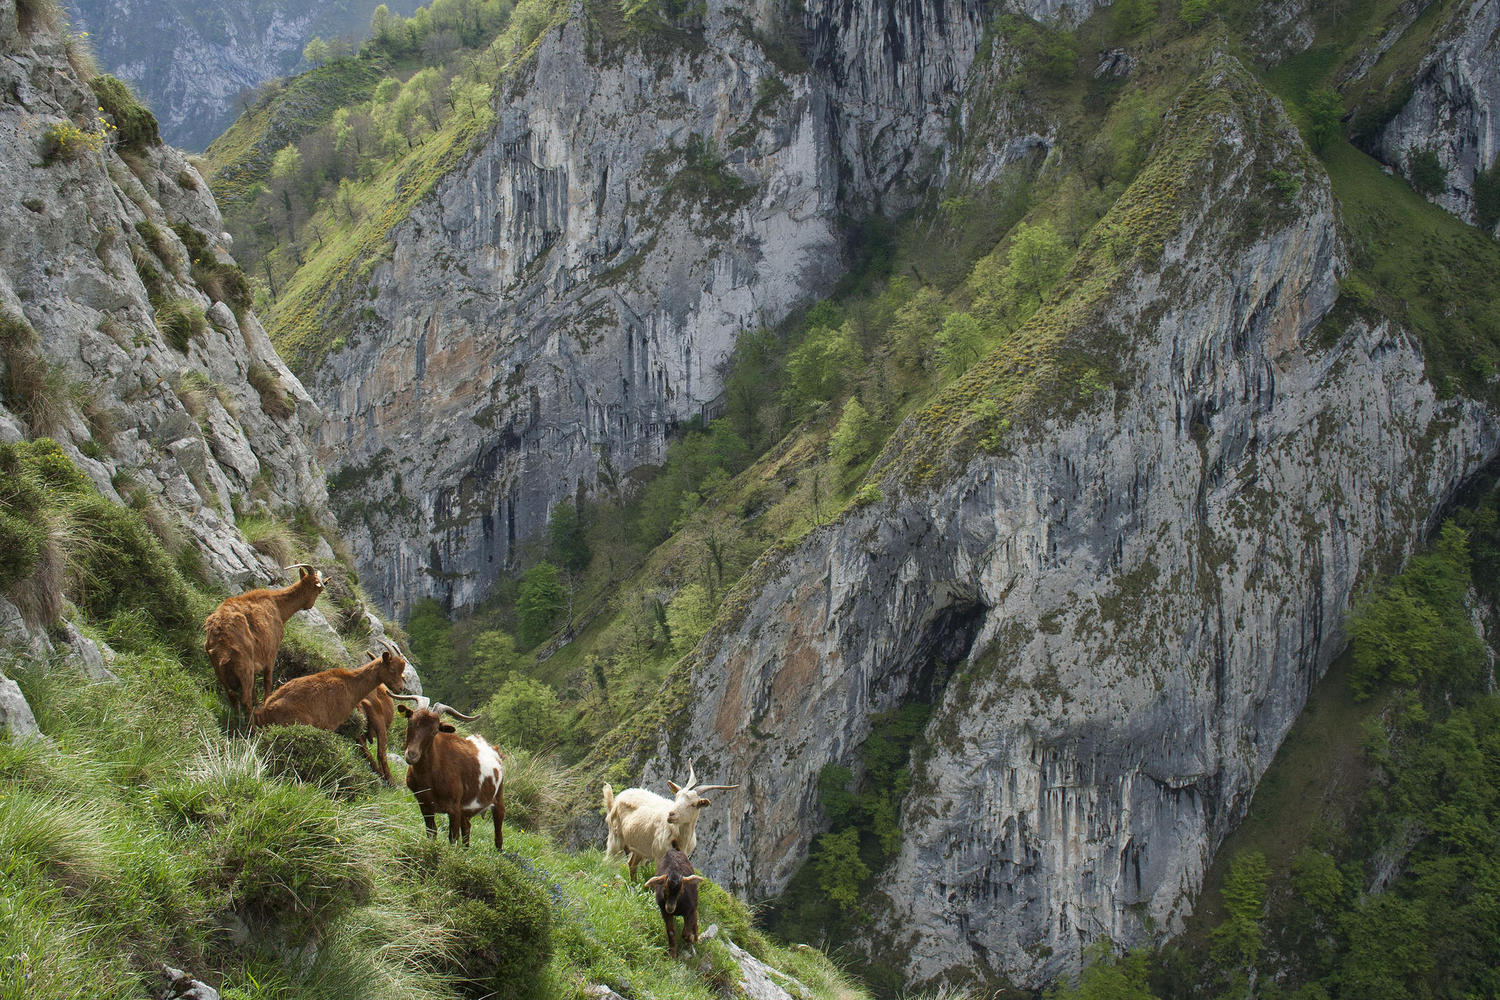 Domestic goats at the steep hills of the Beyos gorge